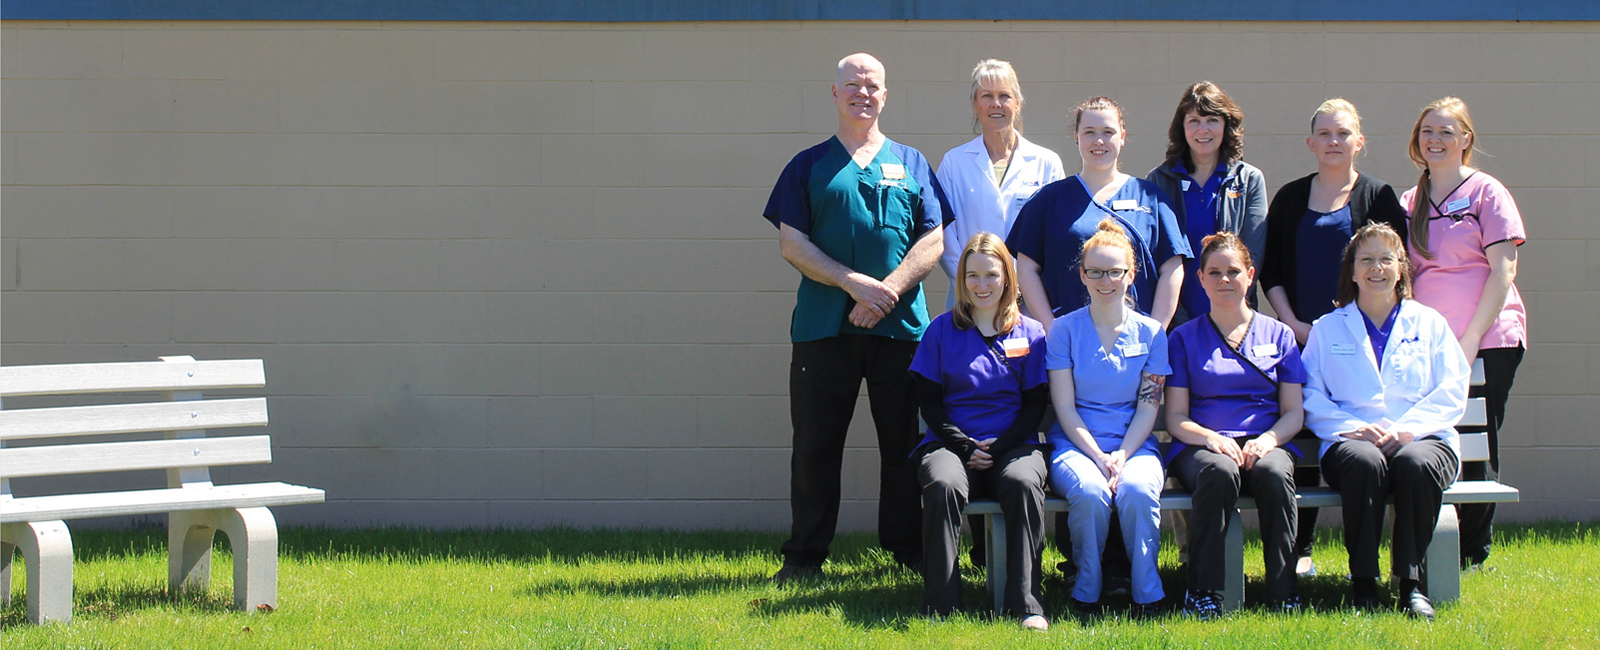 Team Picture of VCA Snohomish Animal Hospital